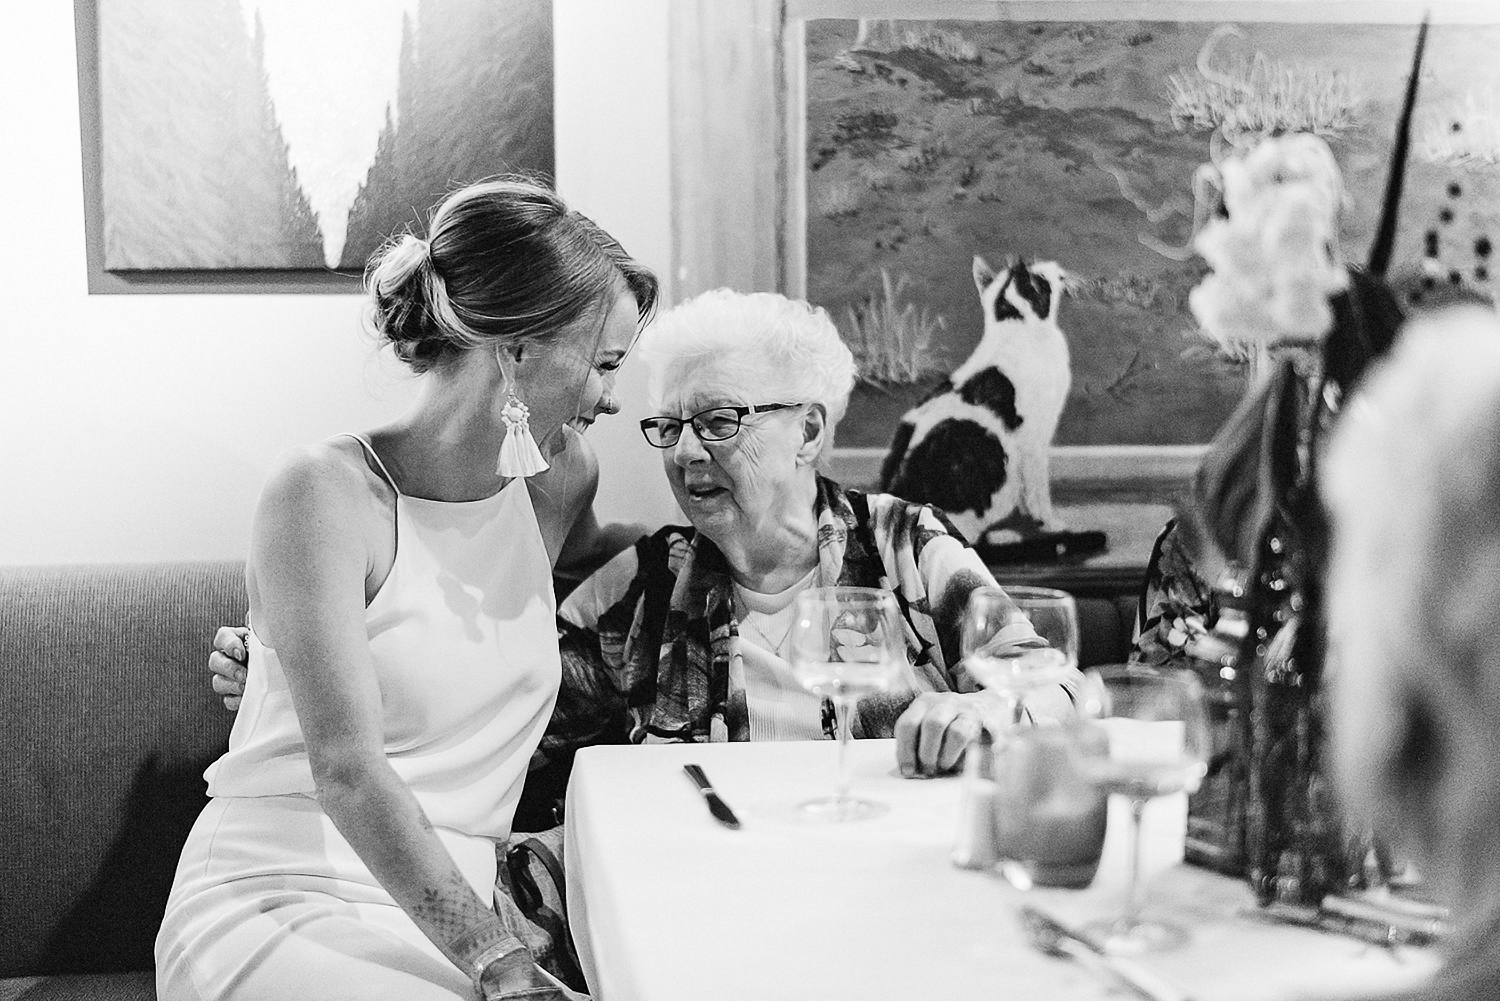 Toronto-Wedding-Photographers-3B-Photography-Vintage-Analog-Film-Aesthetic-Natural-Documentary-Photojournalistic-Wedding-Photography-Editorial-Timeless-Candid-Bride-hugging-grandmother-BW.jpg